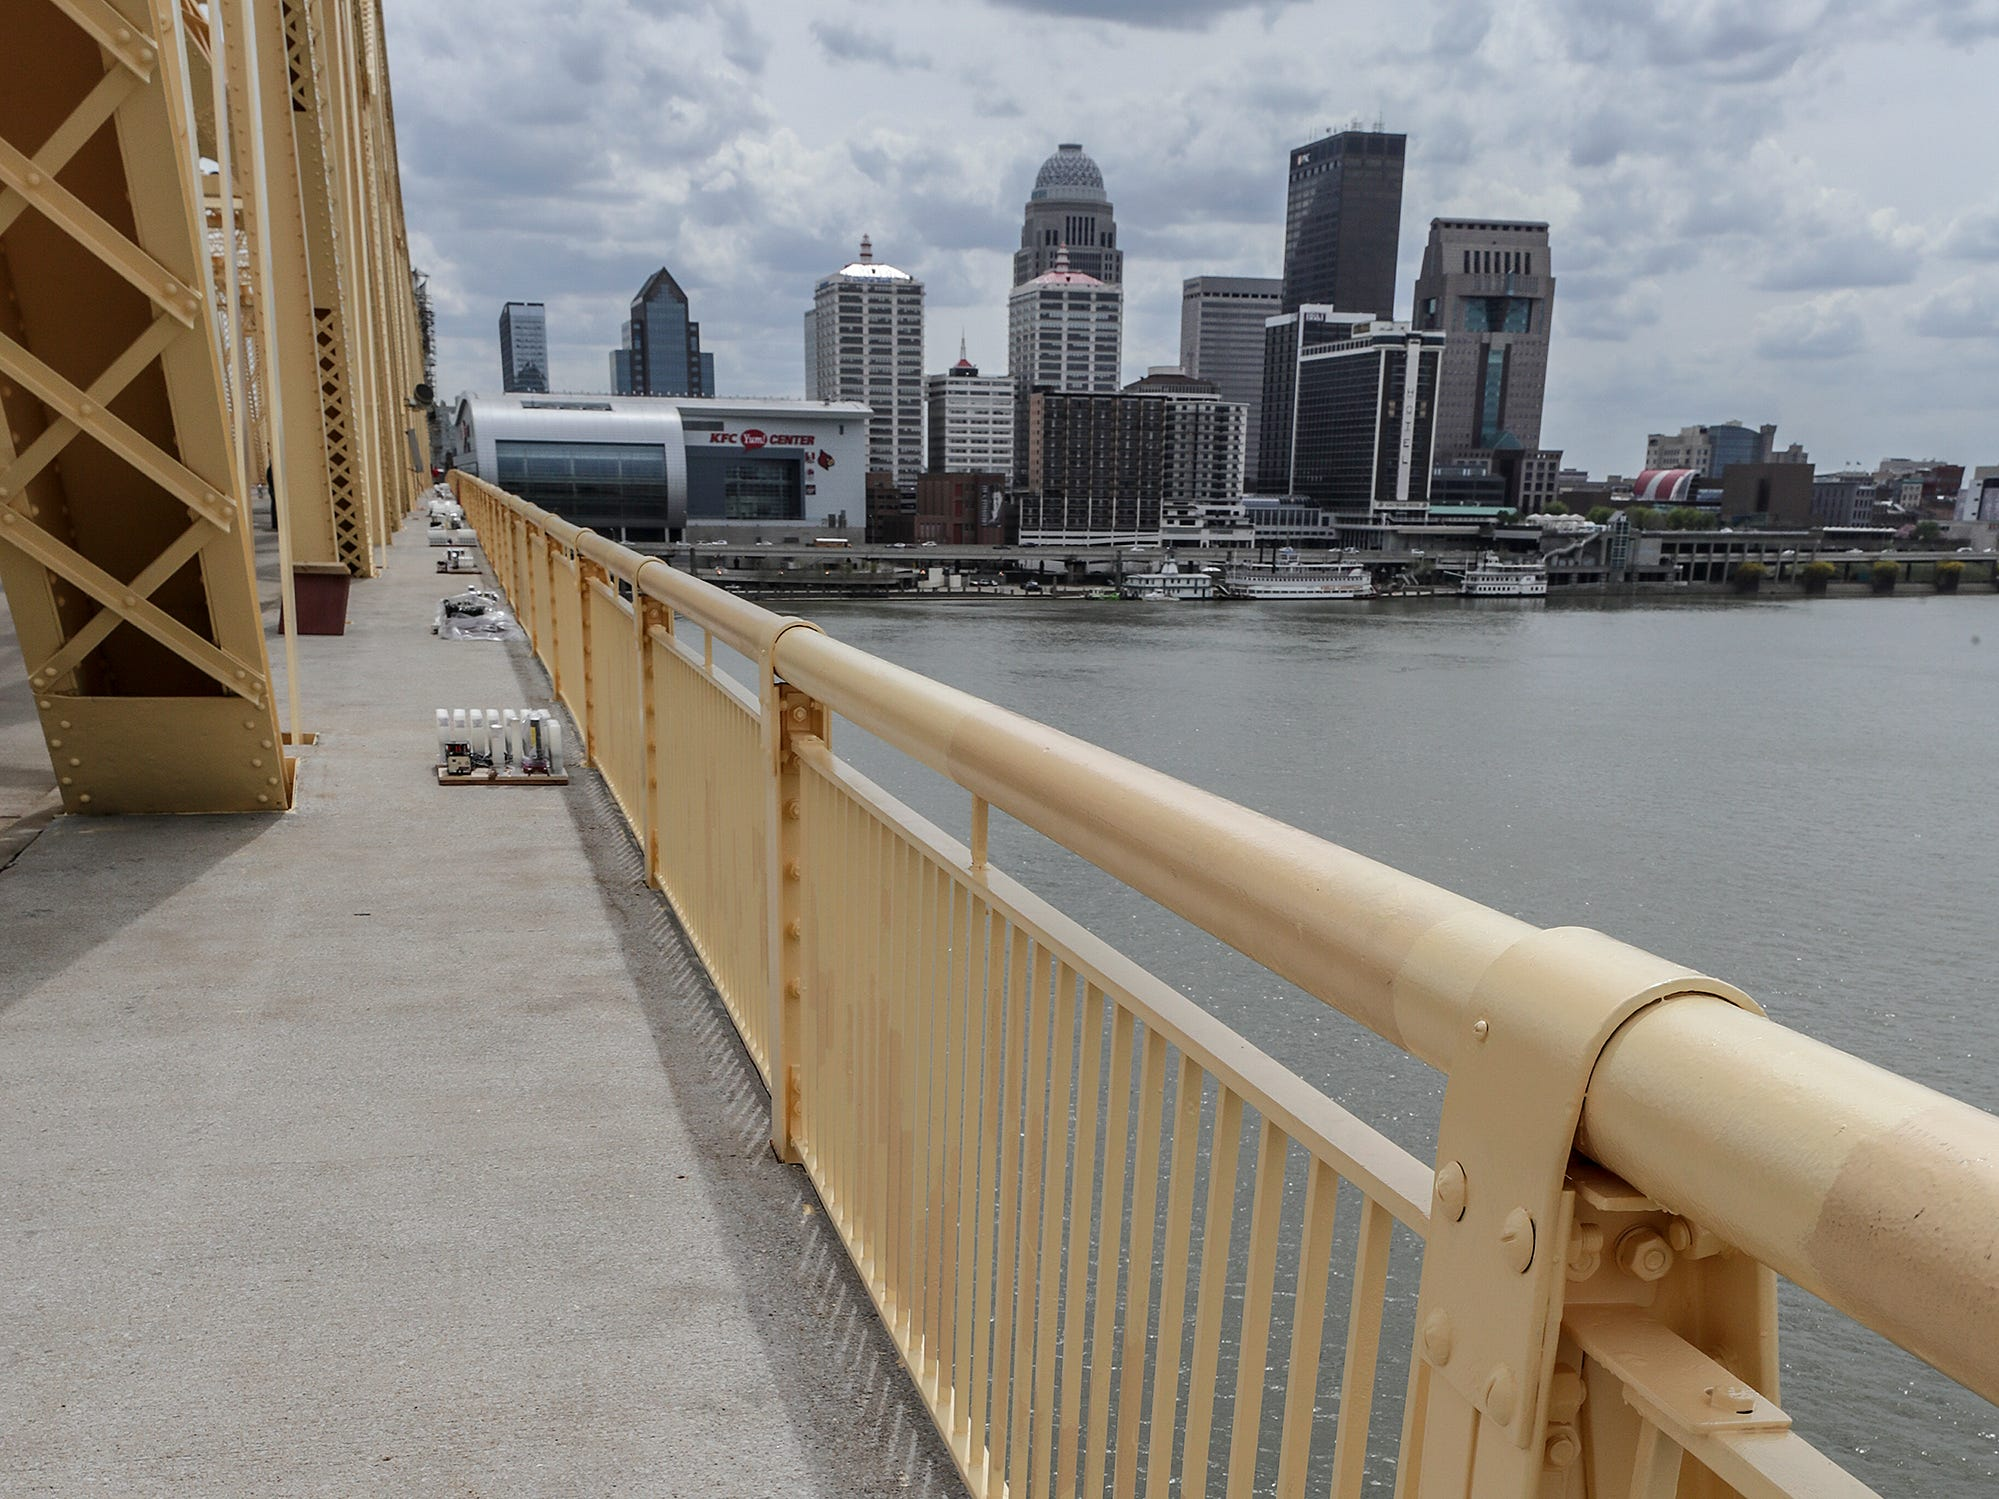 Crews from Zambelli have begun the process of placing fireworks along the Clark Memorial Bridge.  Dozens of spots with thousands of fireworks all timed to the Thunder Over Louisville soundtrack.